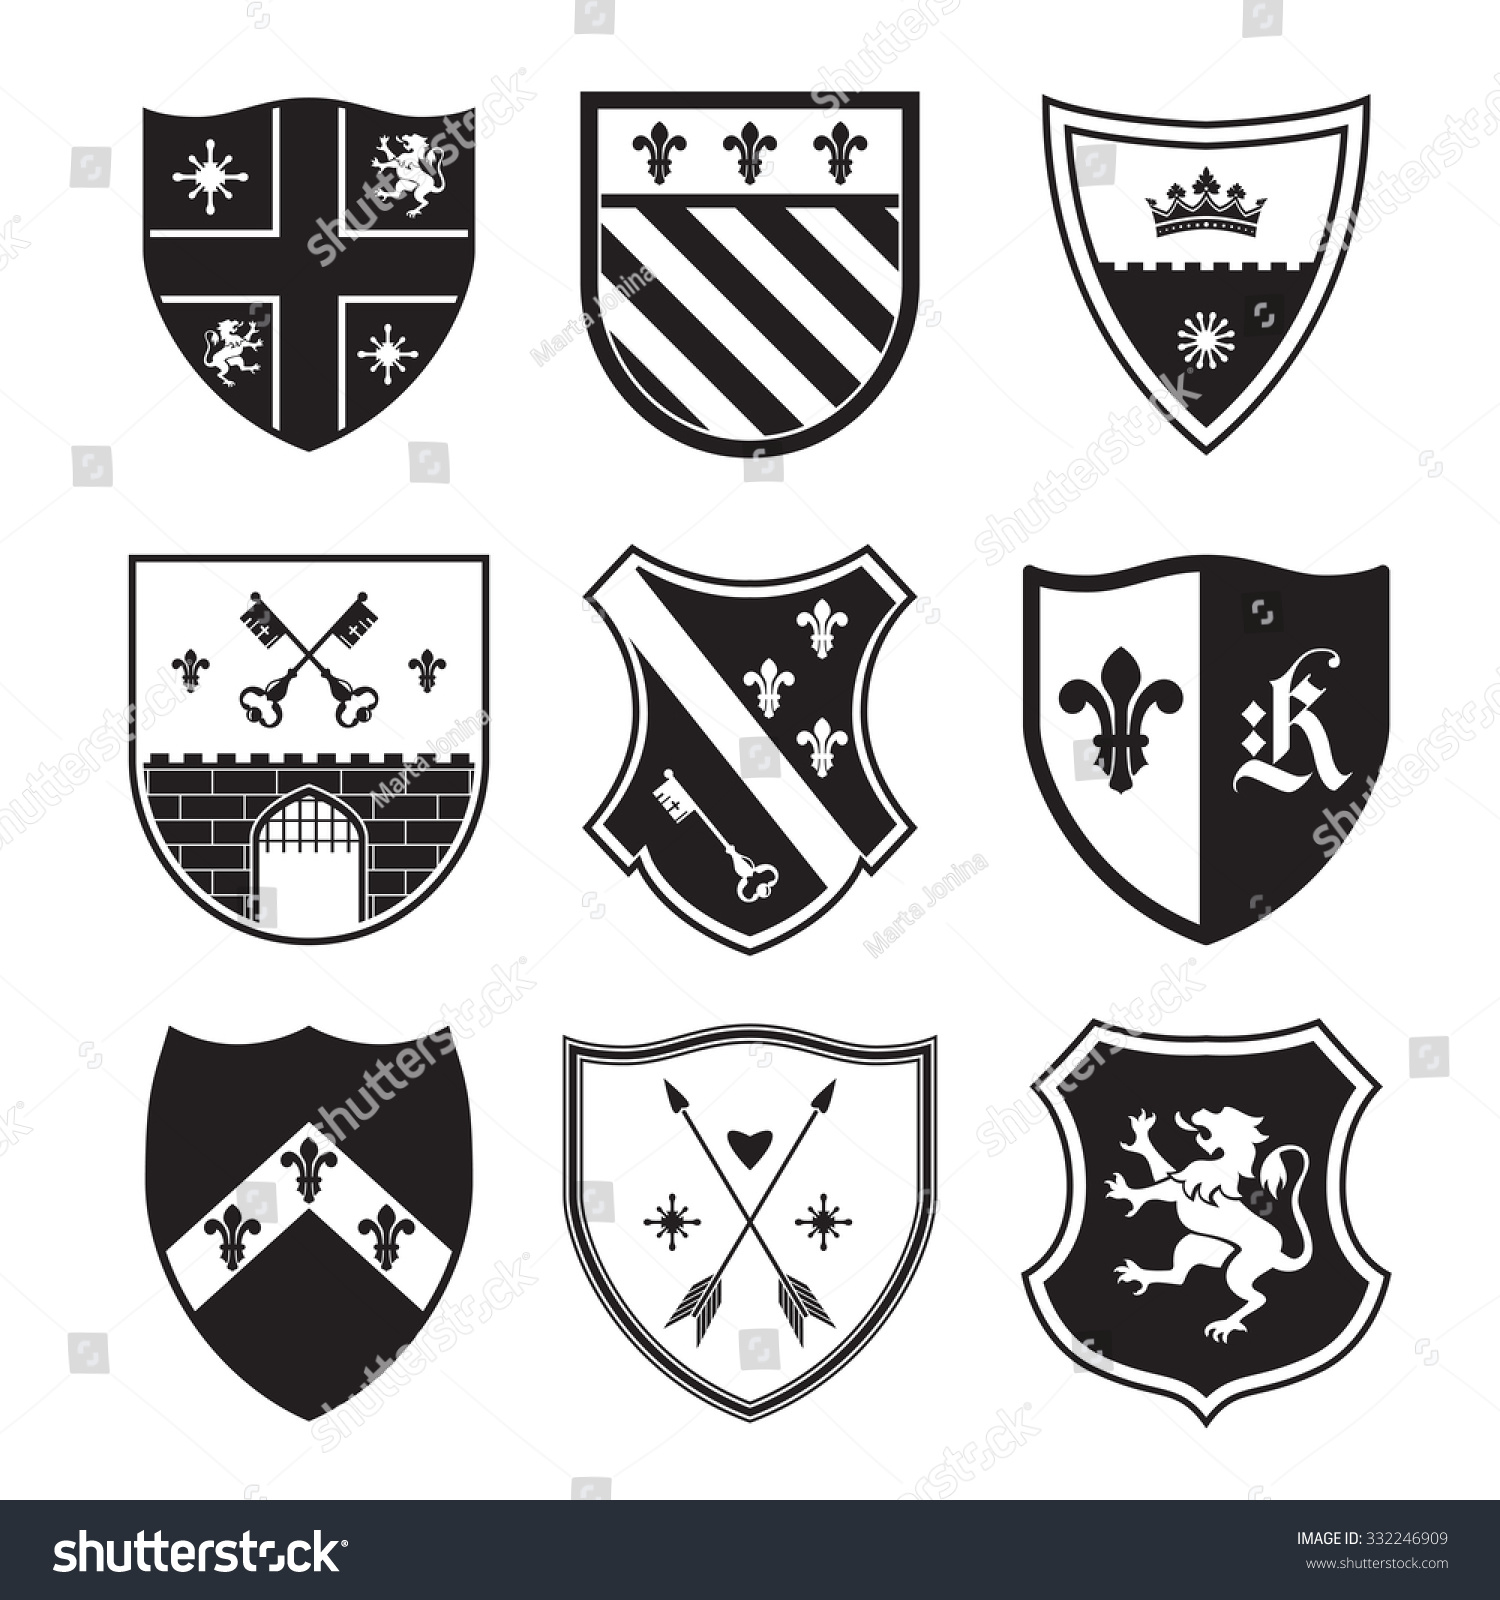 Coat Arms Color Meanings